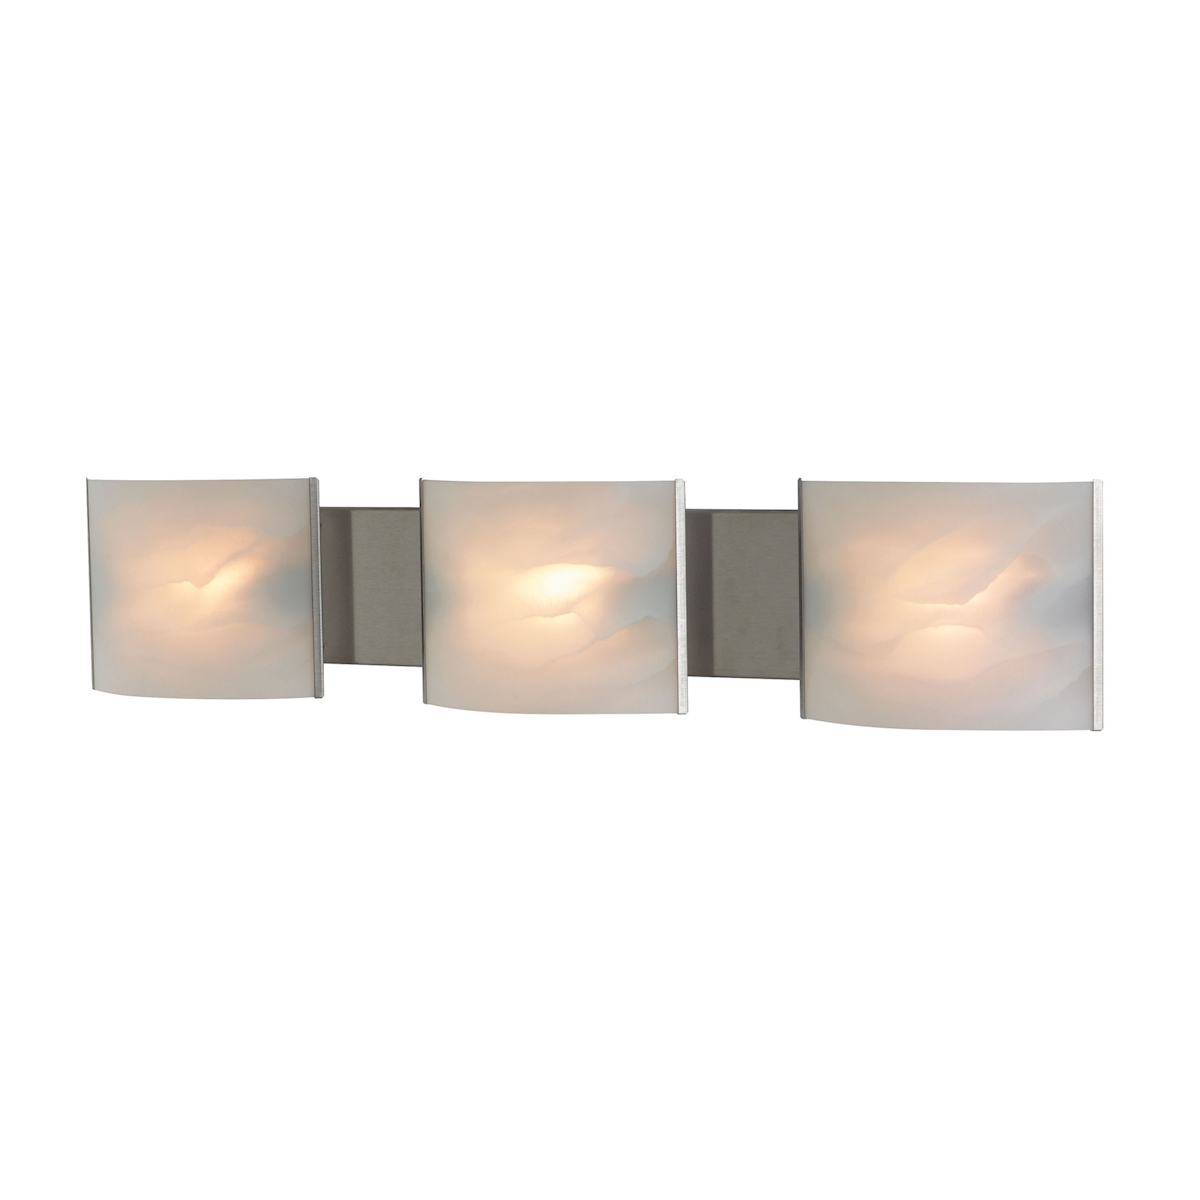 Pannelli Vanity - 3 Light with Lamps. White Alabaster Glass / SS Finish